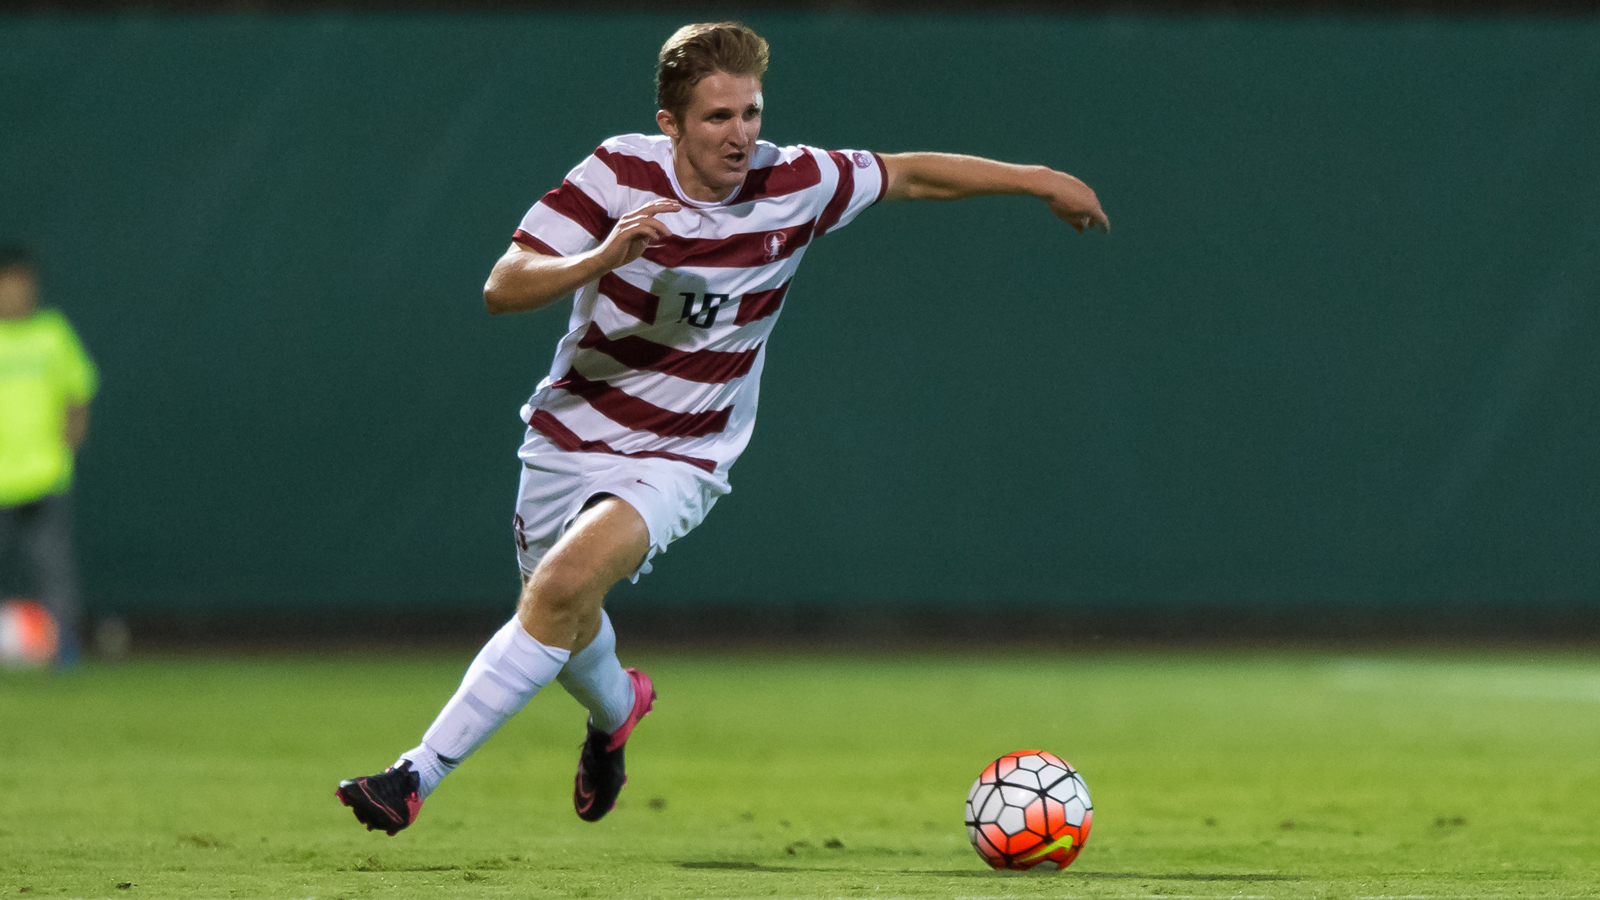 Stanford, CA - September 4, 2015: Eric Verso during the Stanford vs Northeastern men's soccer match in Stanford, California.  The Cardinal defeated the Huskies 1-0.